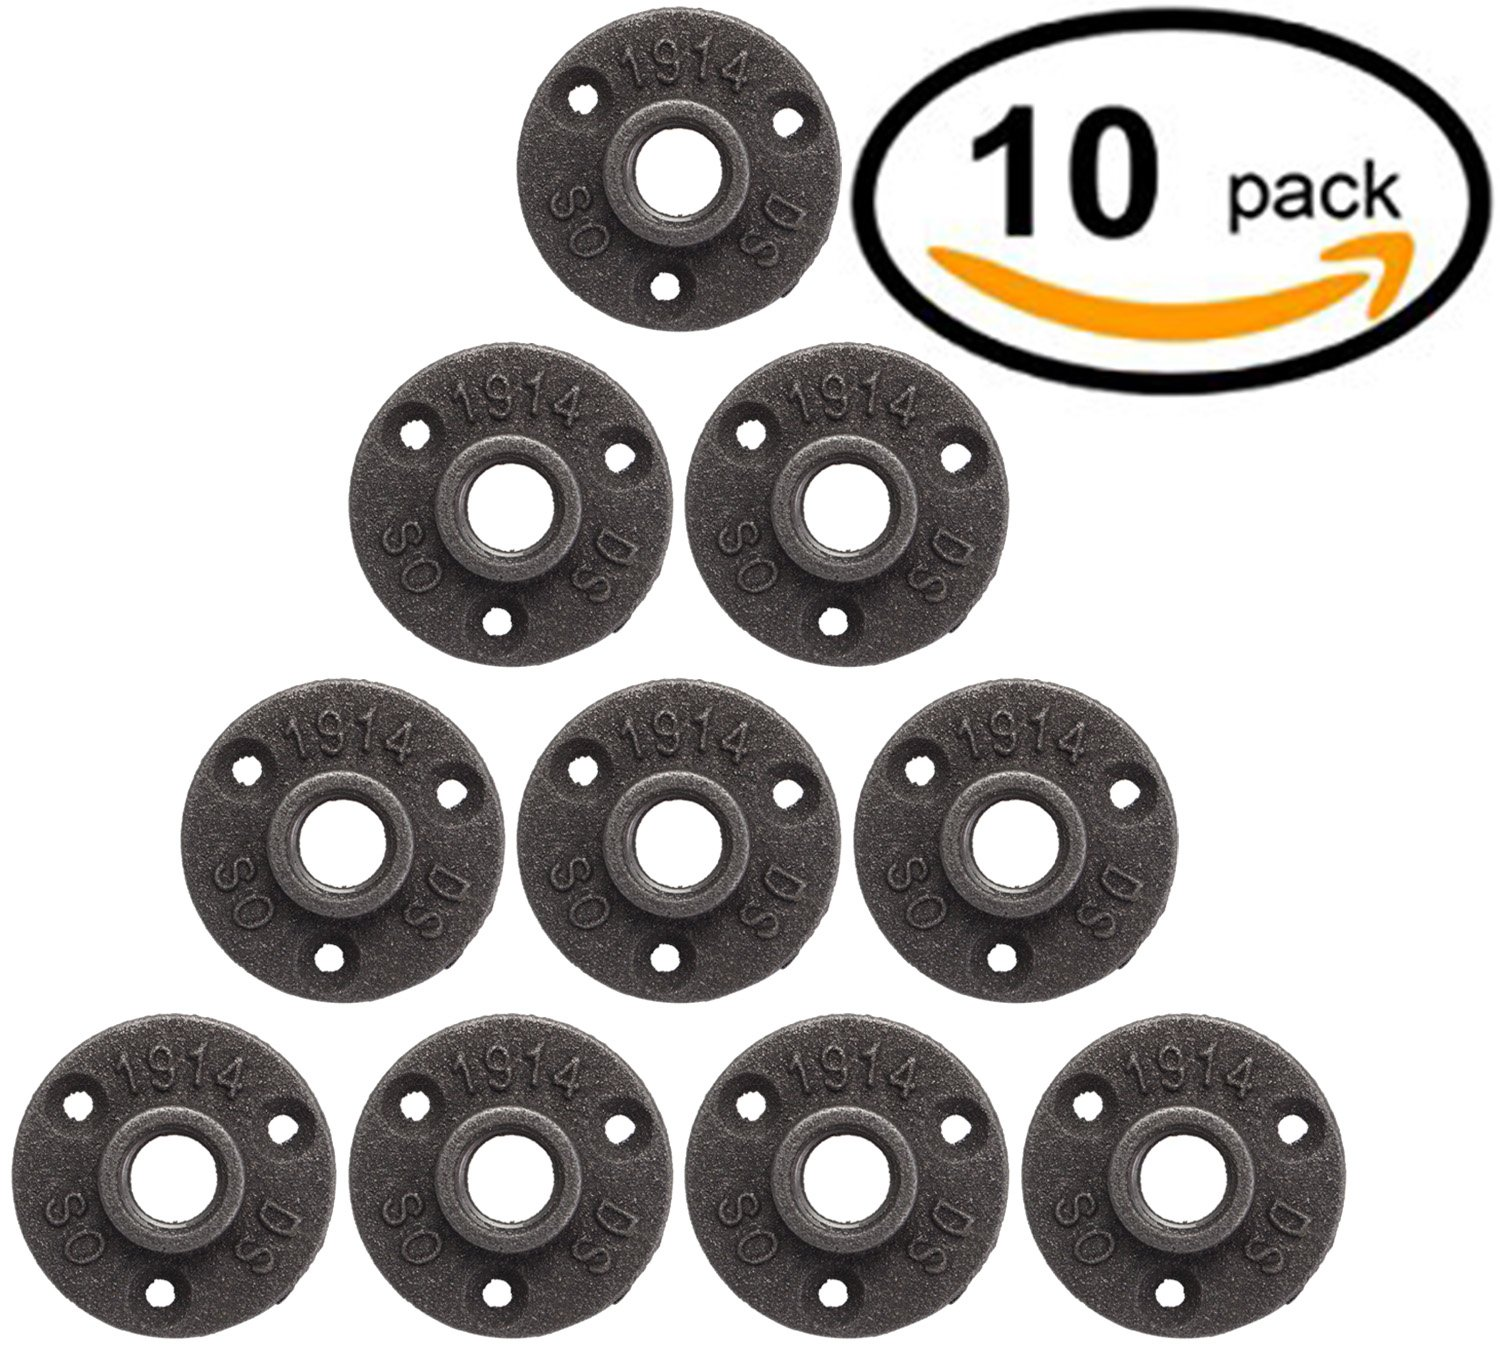 10 Pack 1/2'' Floor Flange Pipe Decor Cast Iron Black Pipe Floor Threaded Pipe Fitting Industrial Steampunk Vintage Retro Decor Furniture DIY Wall Industrial Plumbing by Brooklyn Pipe